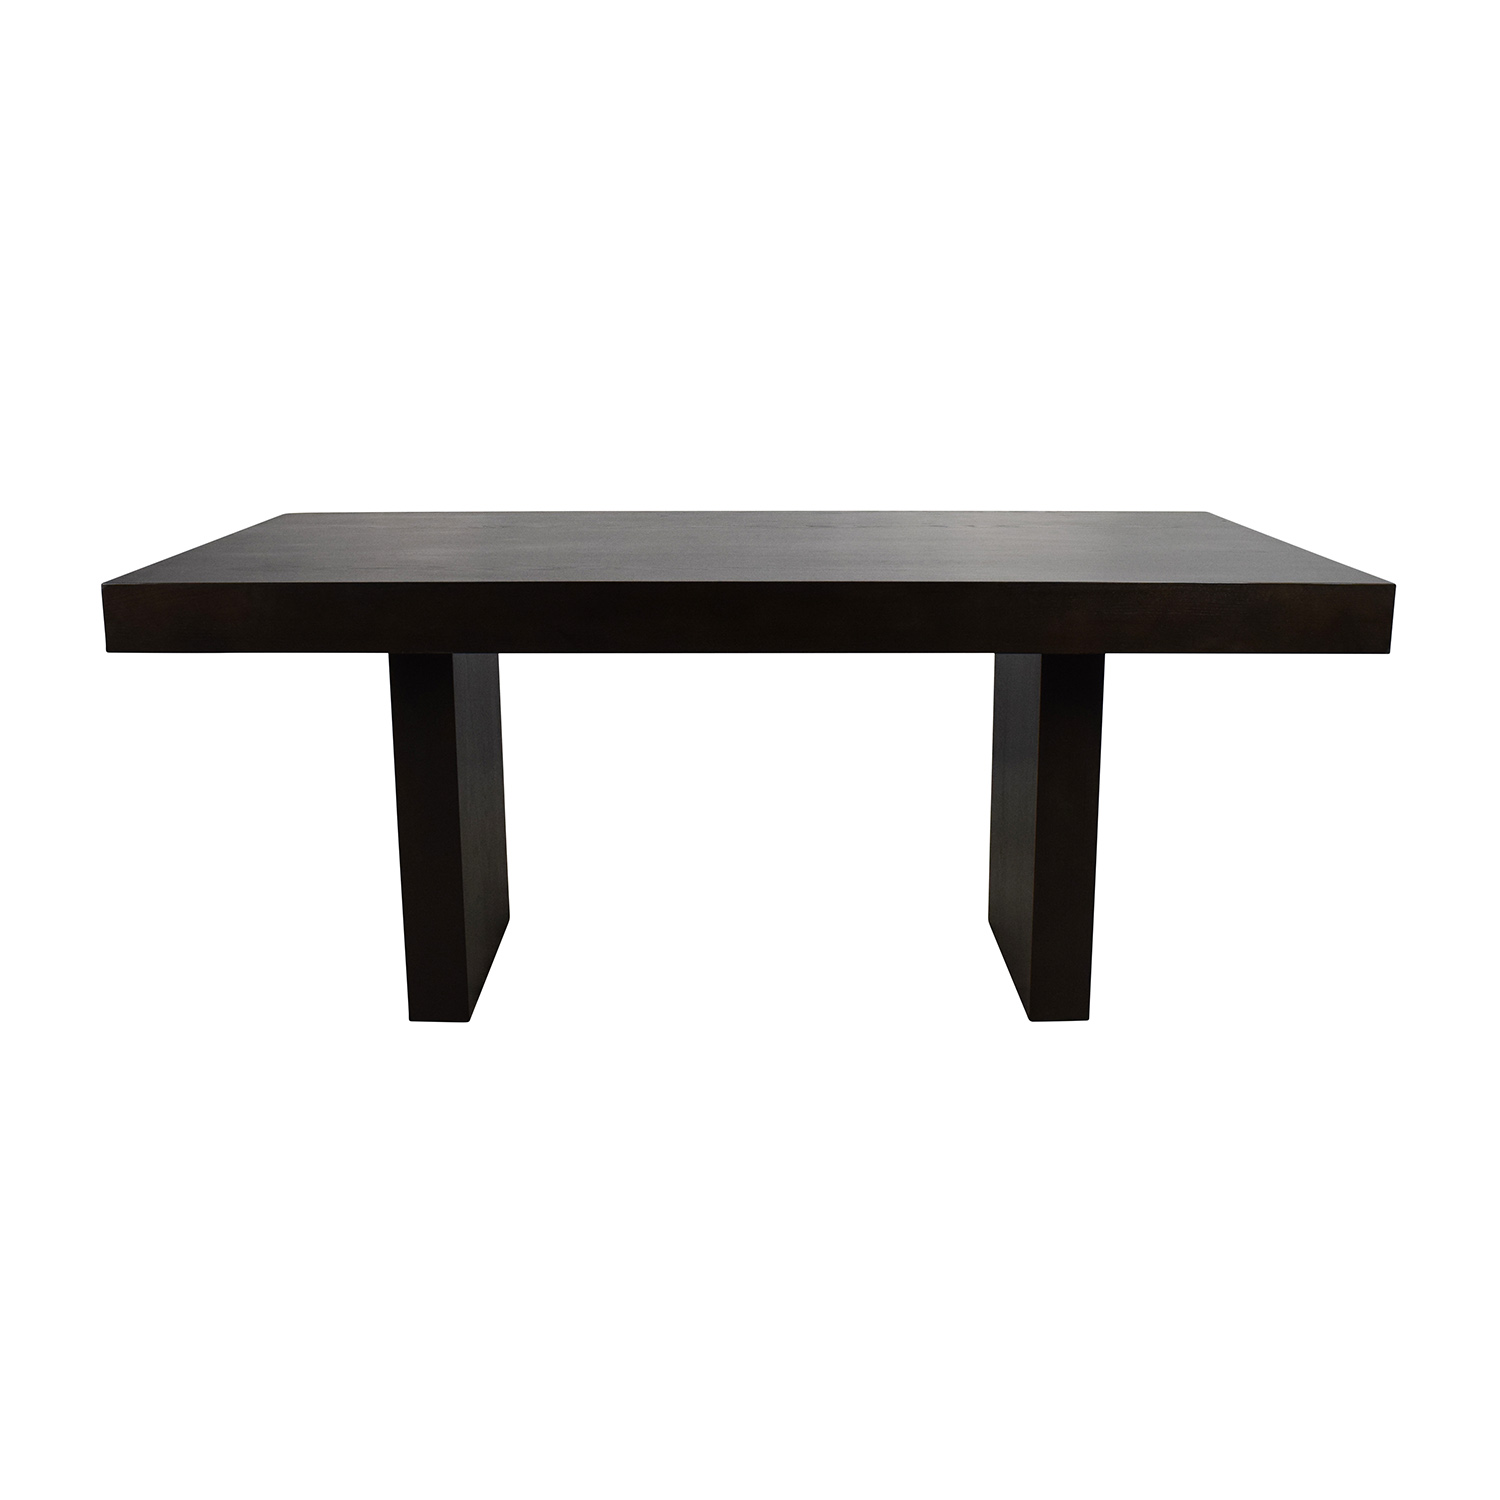 West Elm West Elm Alexa Dining Table second hand